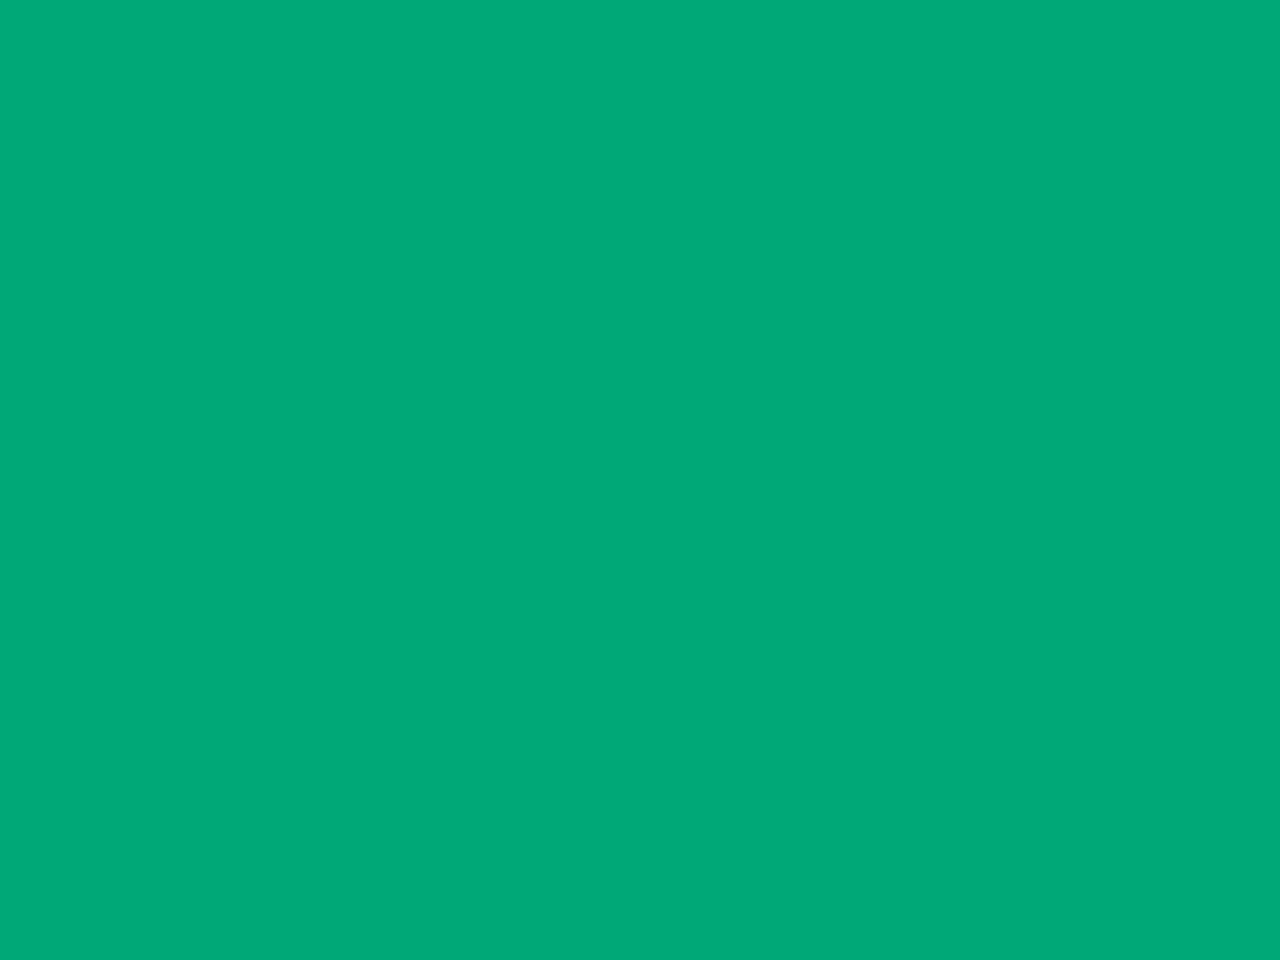 1280x960 Green Munsell Solid Color Background